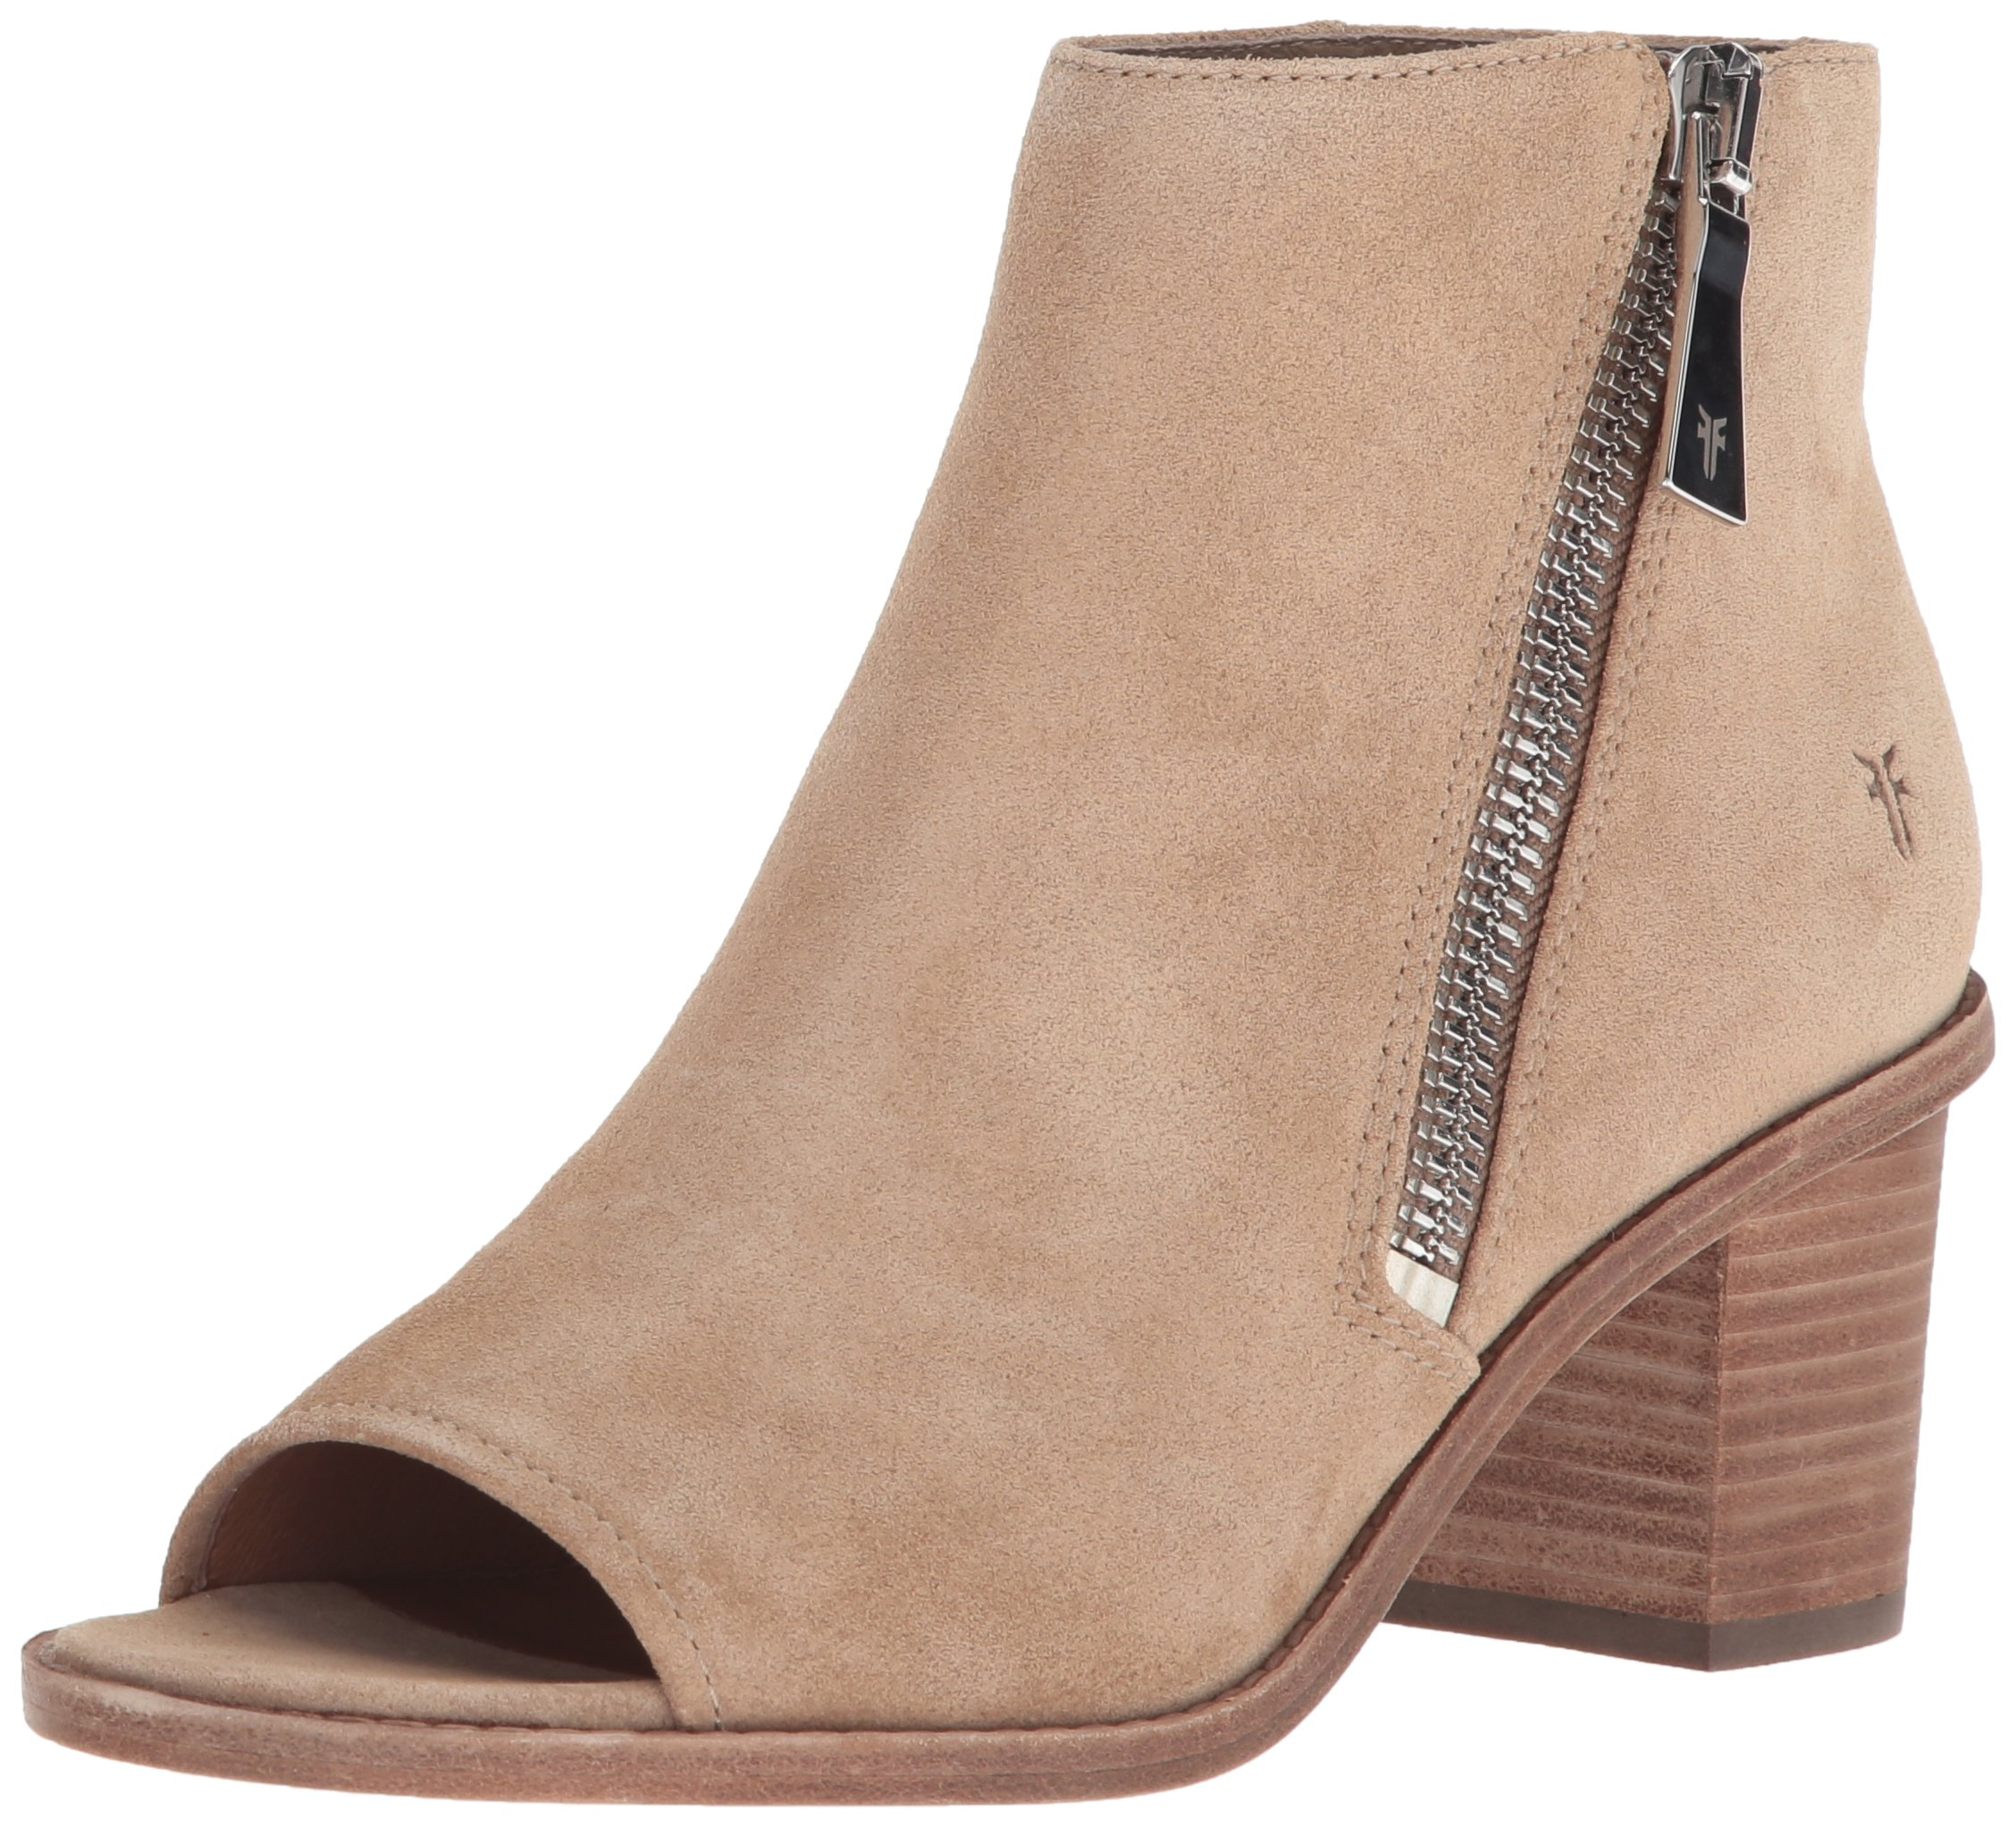 FRYE Women's Brielle Zip Bootie Ankle Boot, Beige, 8 M US